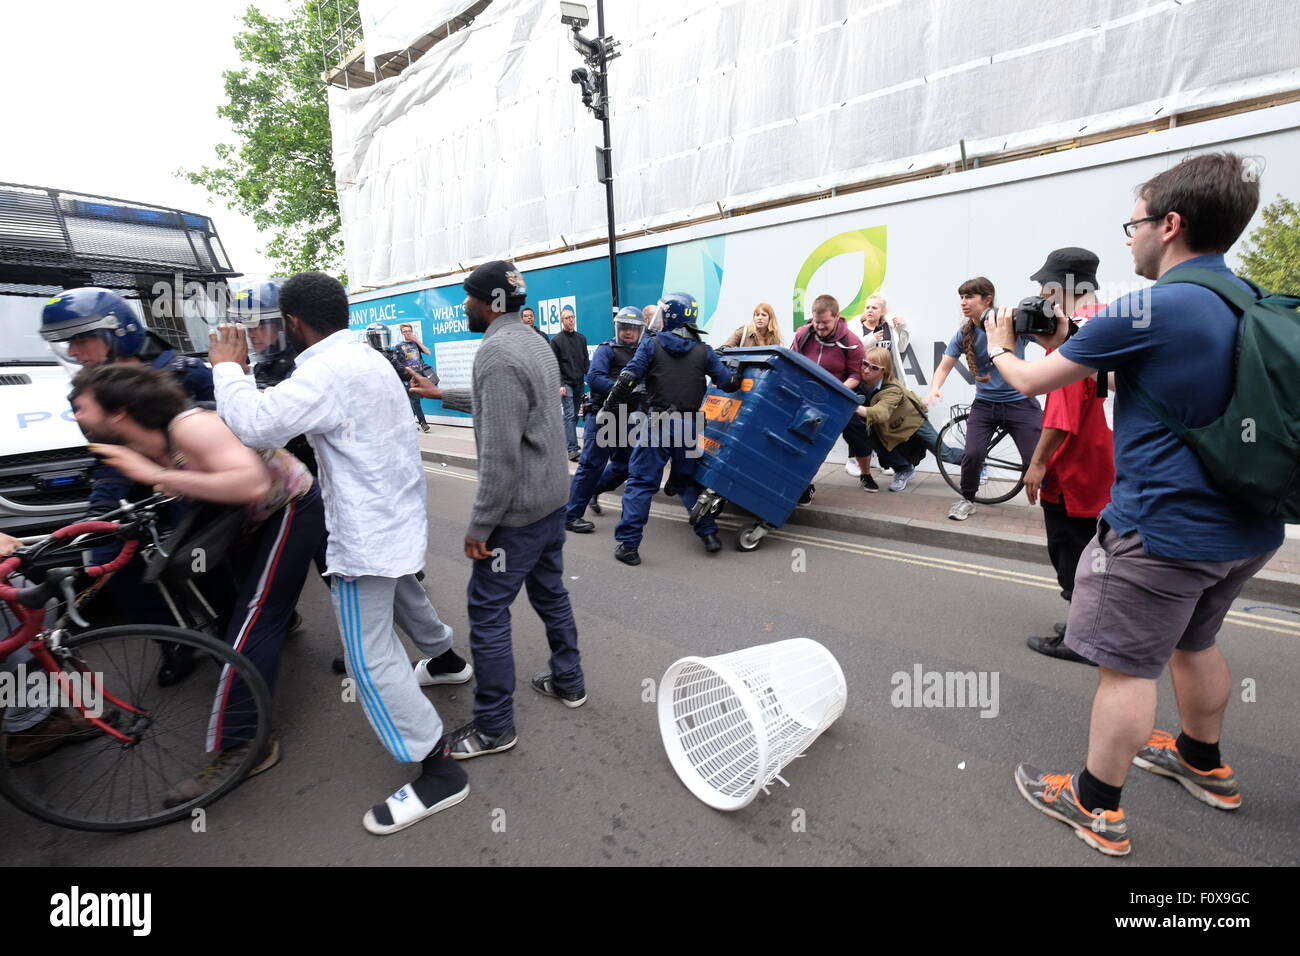 A mini riot occurred in East St as three Police officers came to aid a deportation, with locals and activists blocking - Stock Image